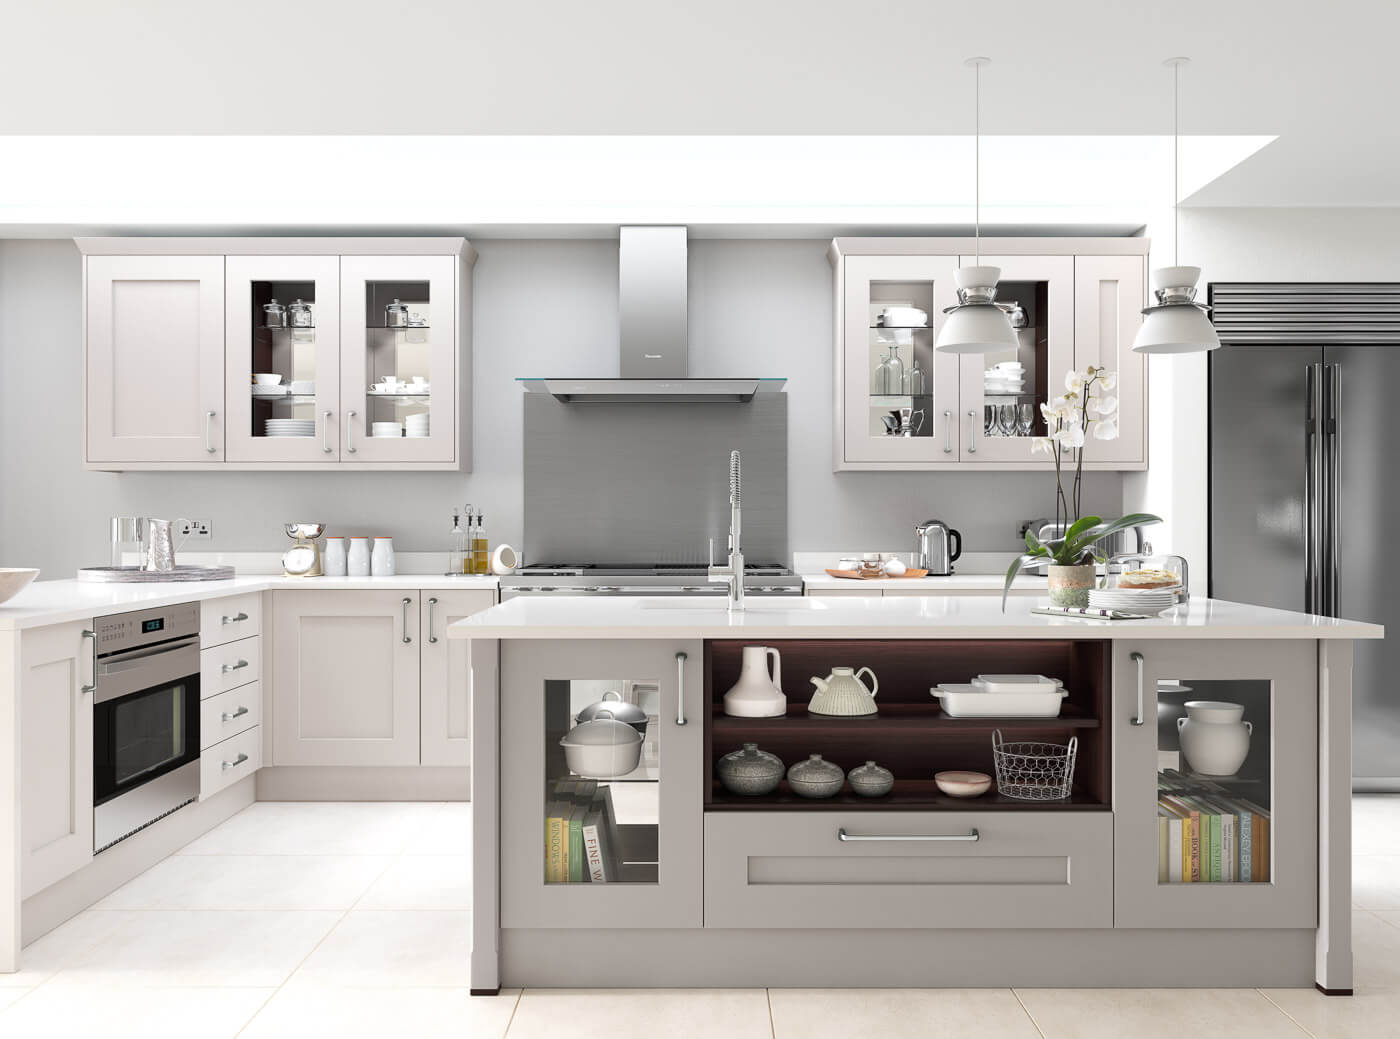 rivington bespoke calico dove and grey traditional kitchen